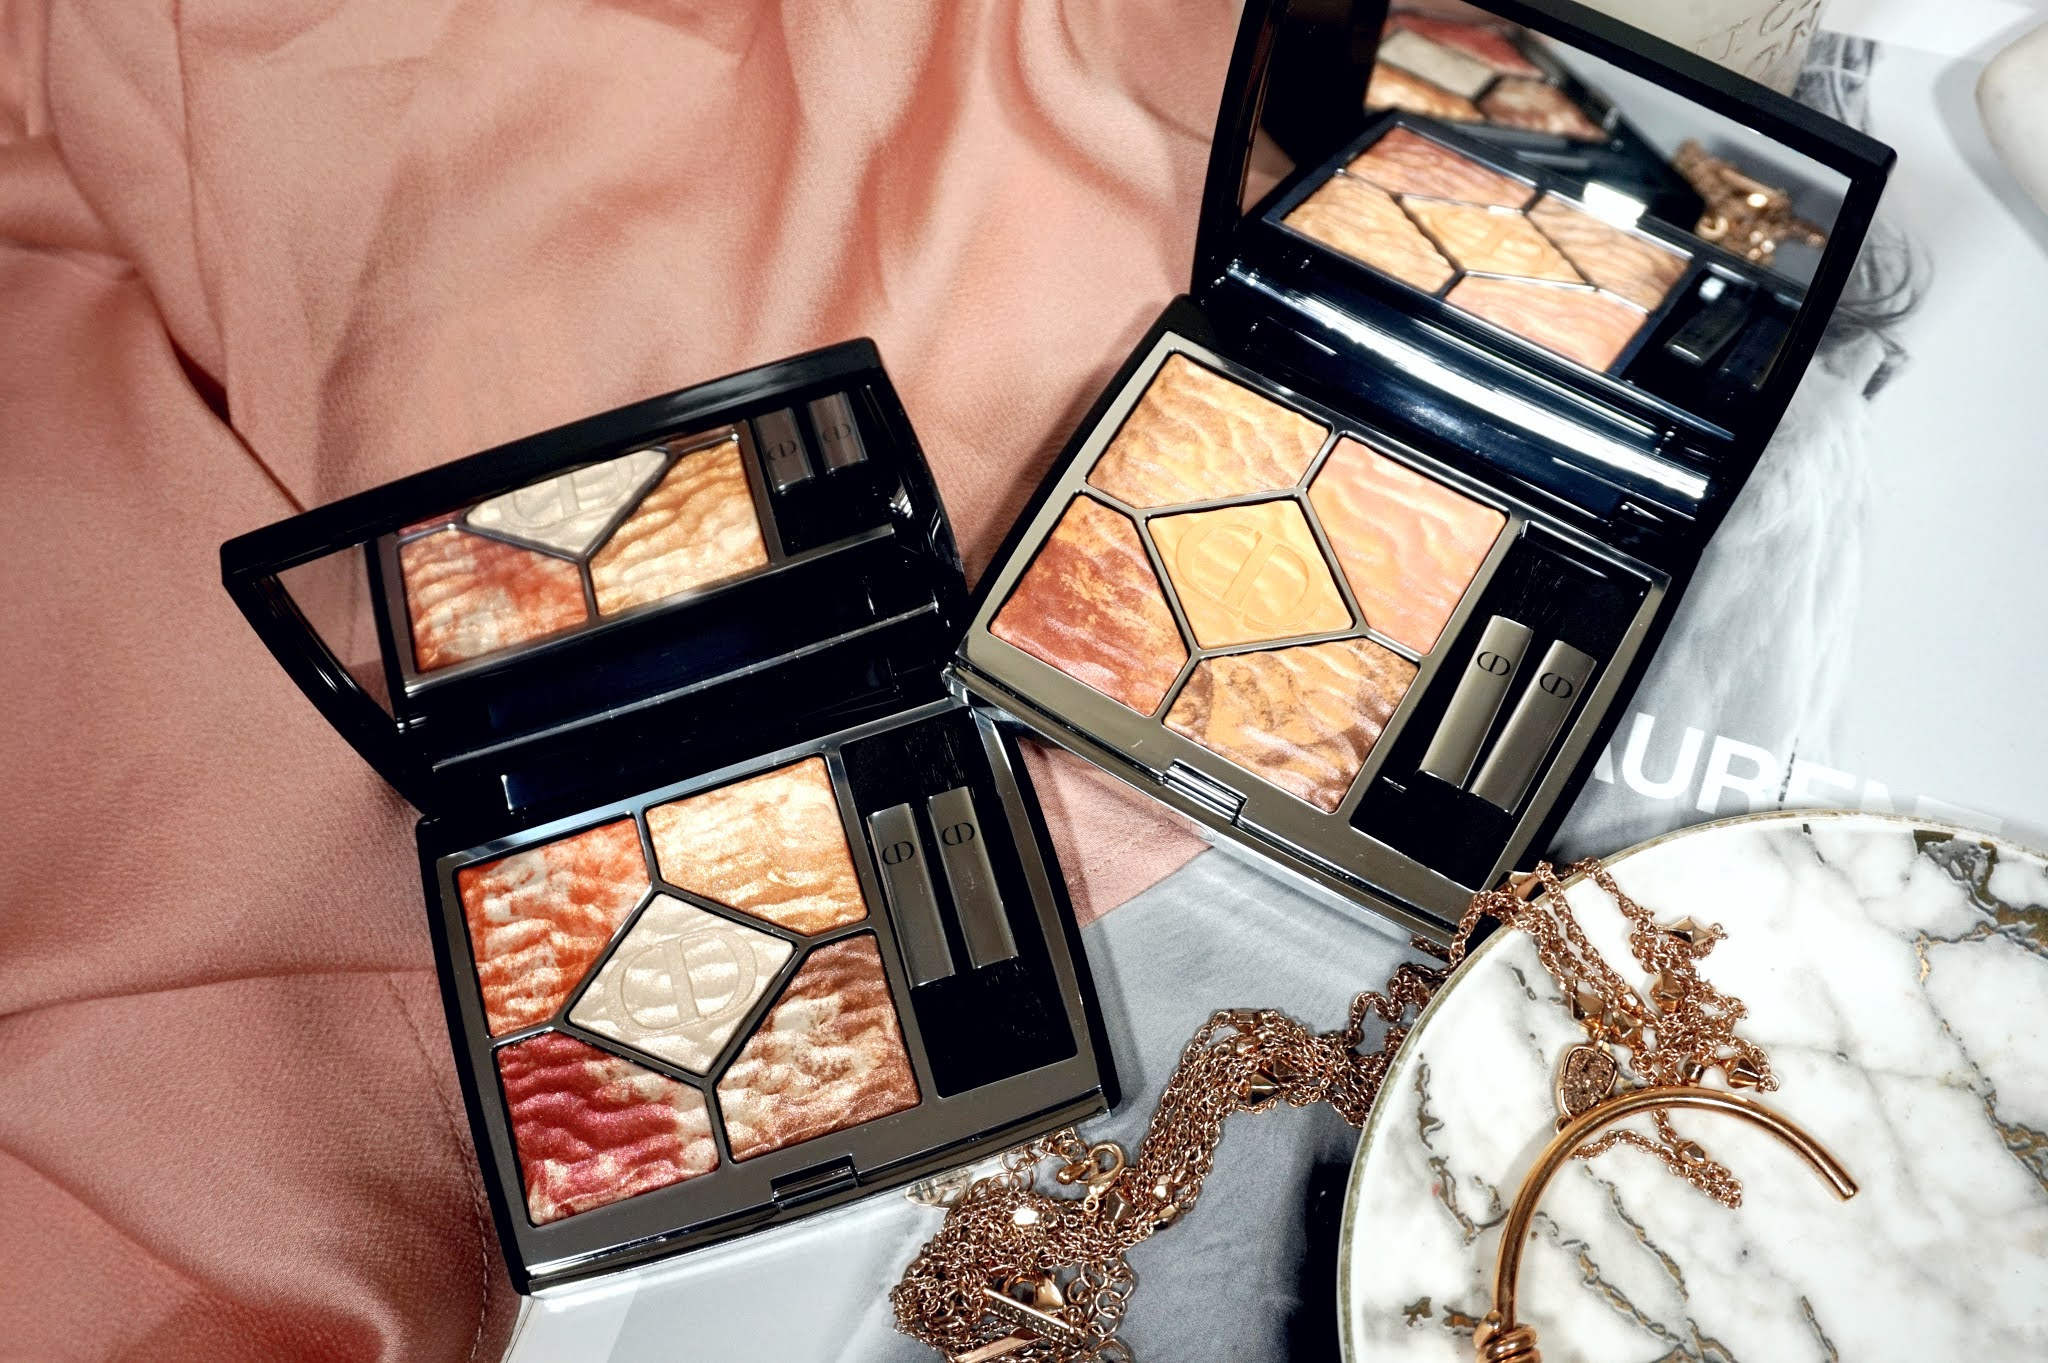 Dior Summer 2021 Dune & Mirage 5 Couleurs Eyeshadow Palette Review and Swatches